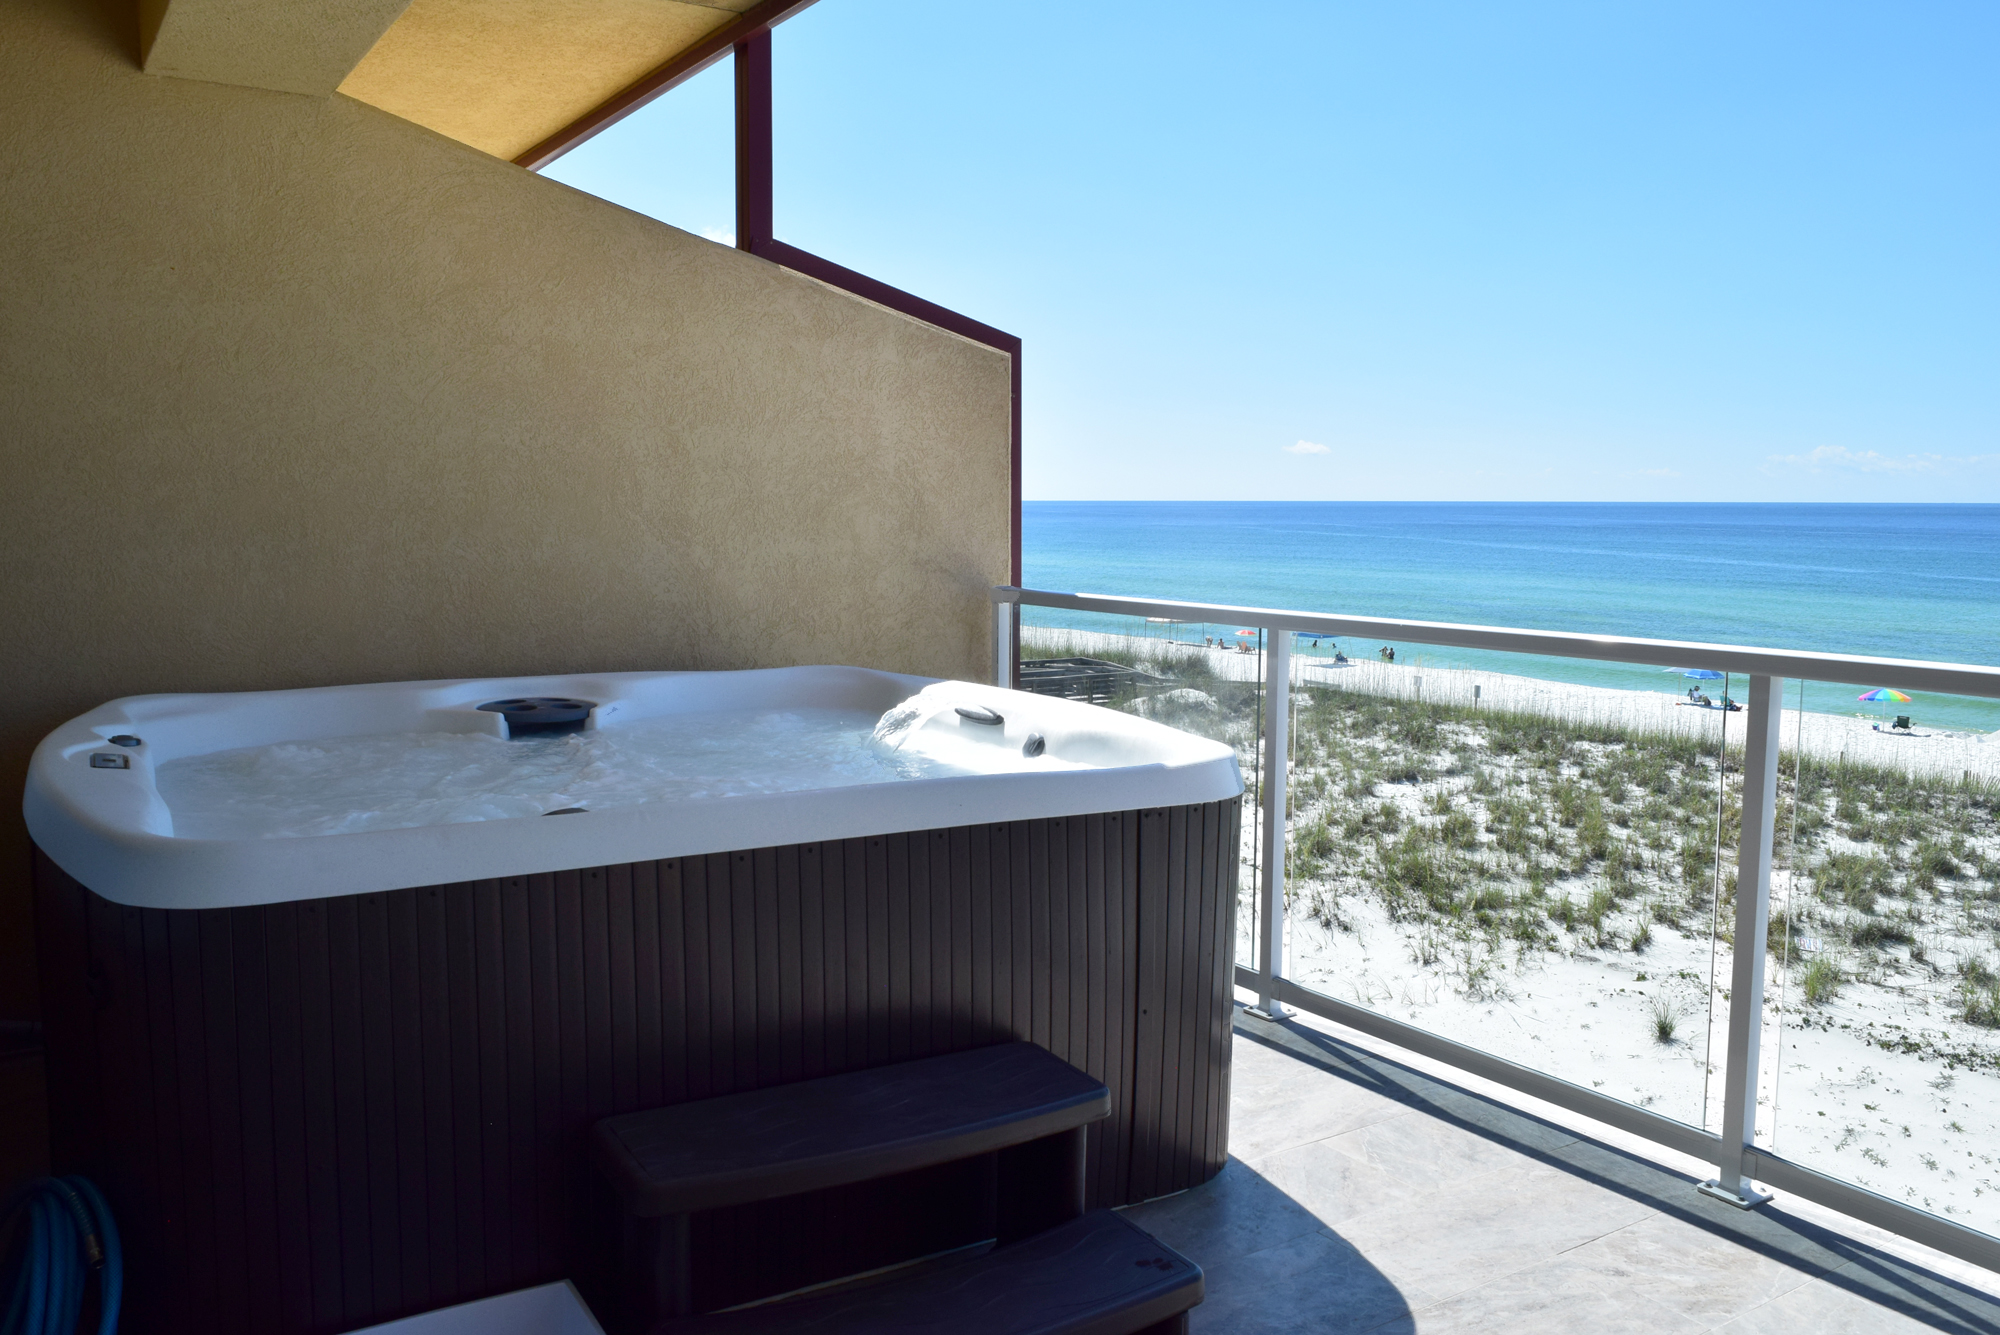 Regency Cabanas #B6 Condo rental in Regency Cabanas Pensacola Beach in Pensacola Beach Florida - #2